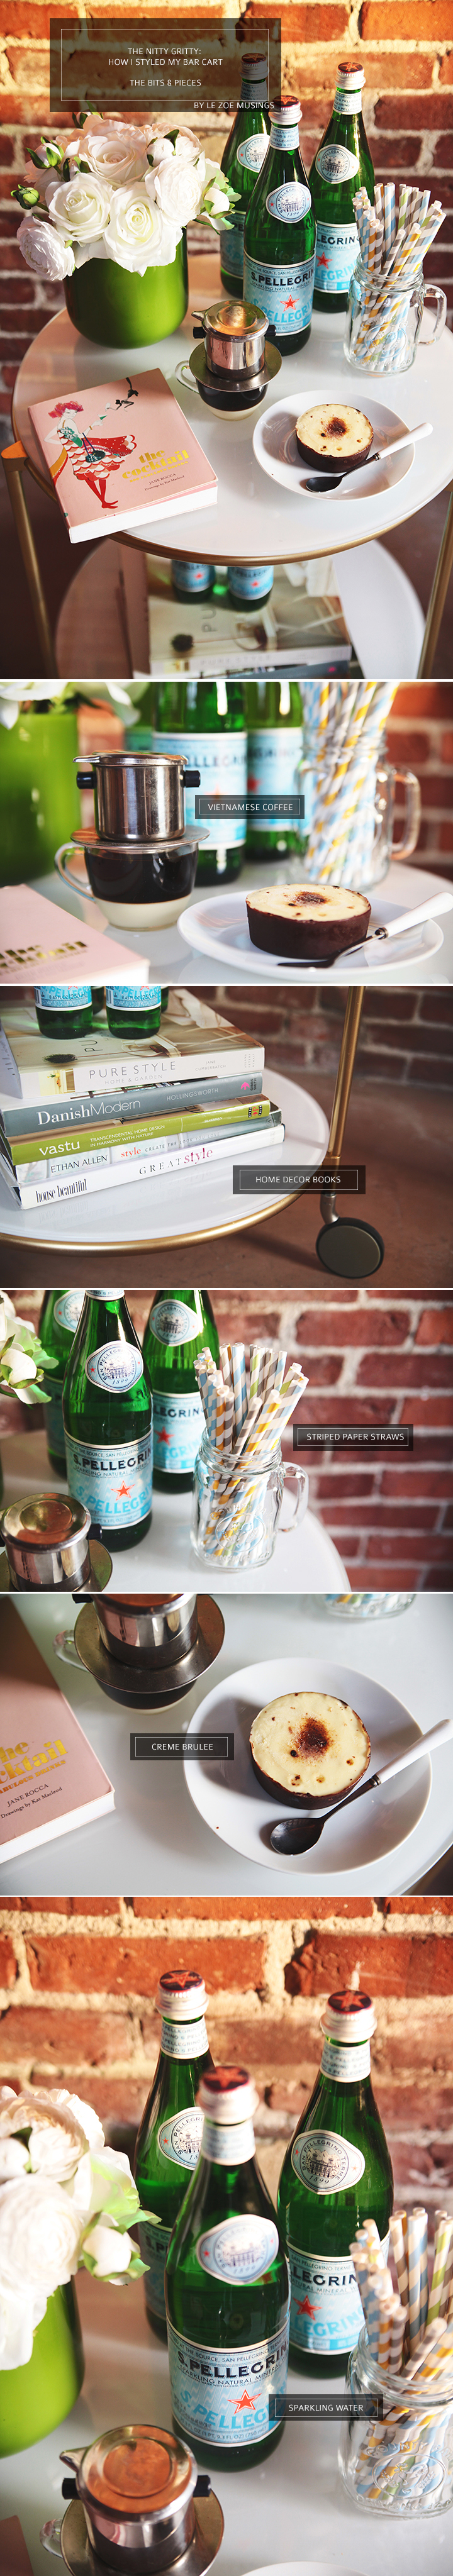 STYLING A BAR CART BY LE ZOE MUSINGS